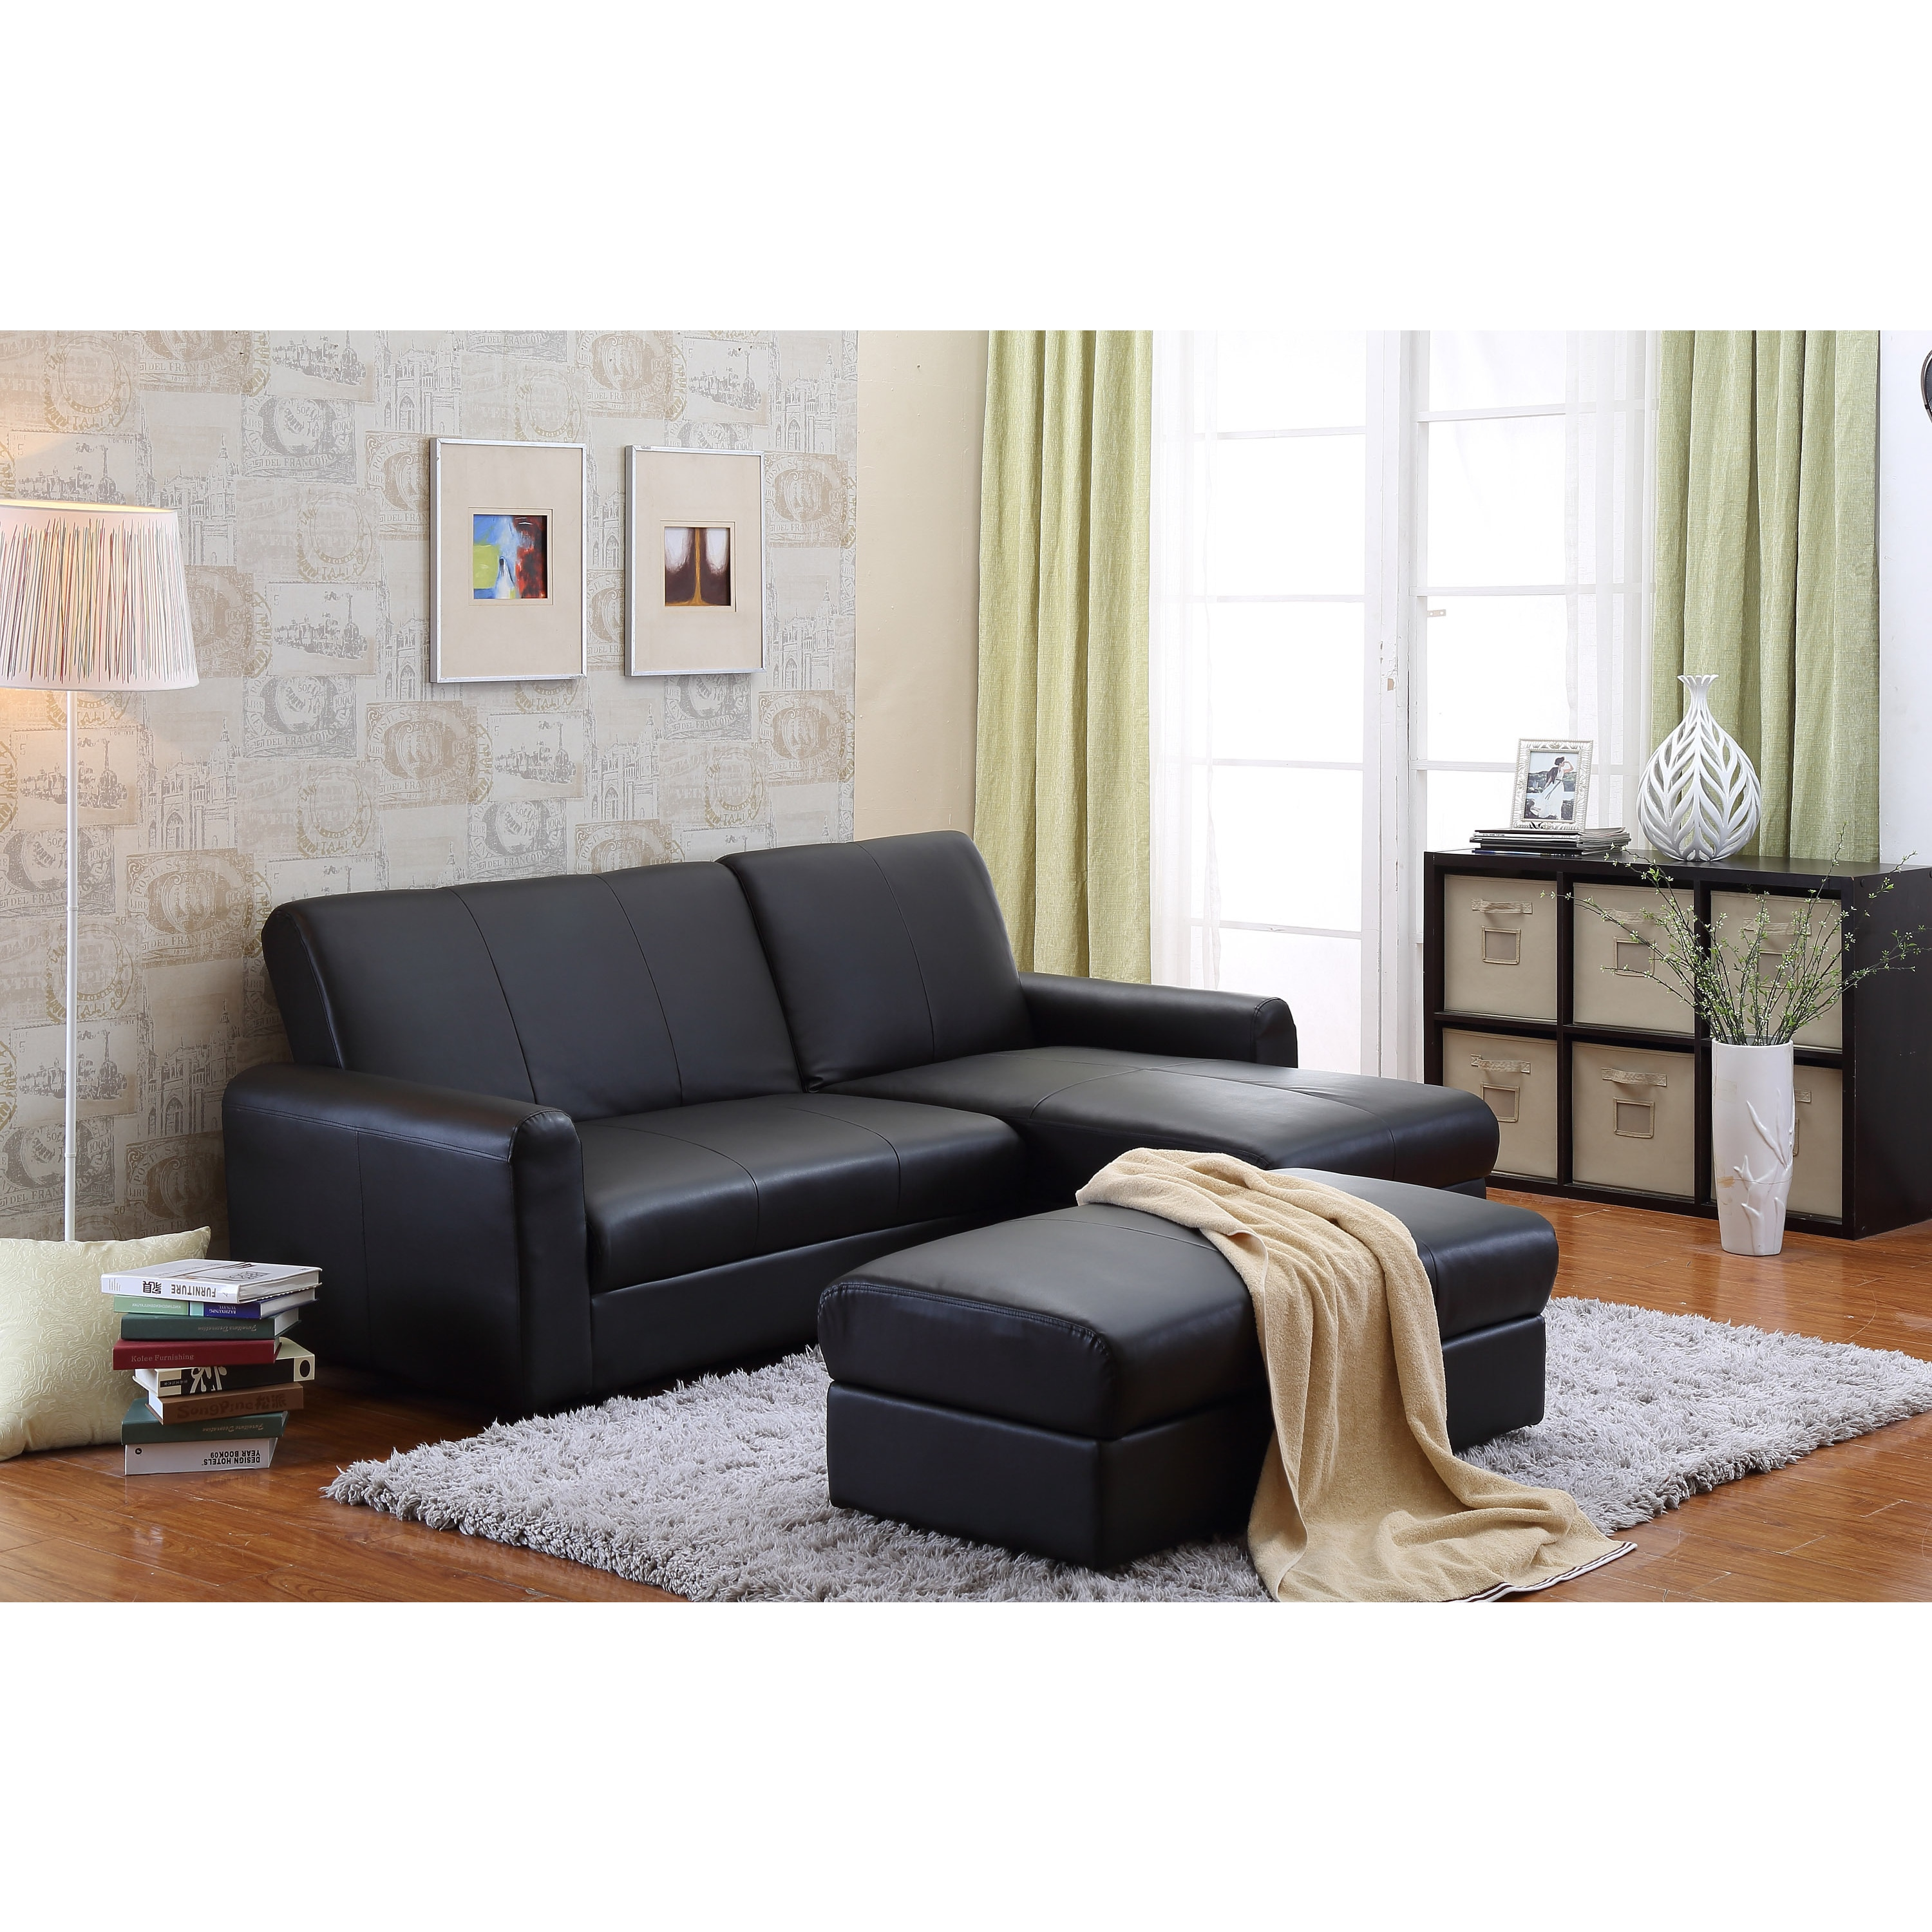 Overstock.com the-Hom Aerie 3-piece Black Bi-cast Leather Sectional Sofa Bed with Ottoman Coffee Table and Storage